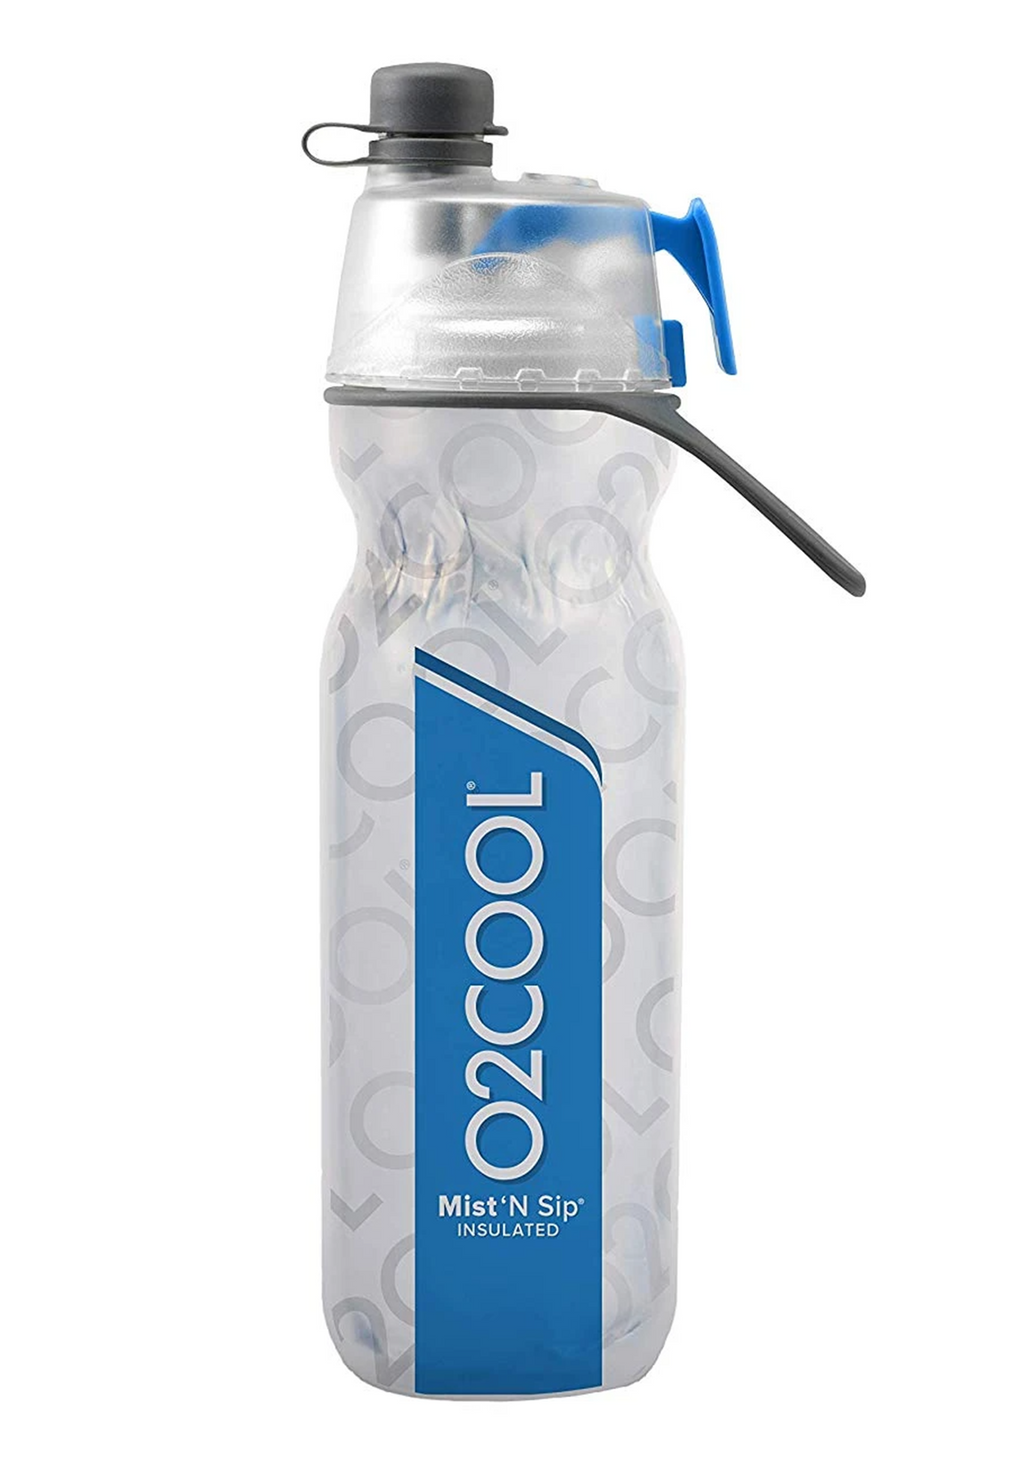 O2COOL MIST 'N SIP DOUBLE INSULATED WATER BOTTLE